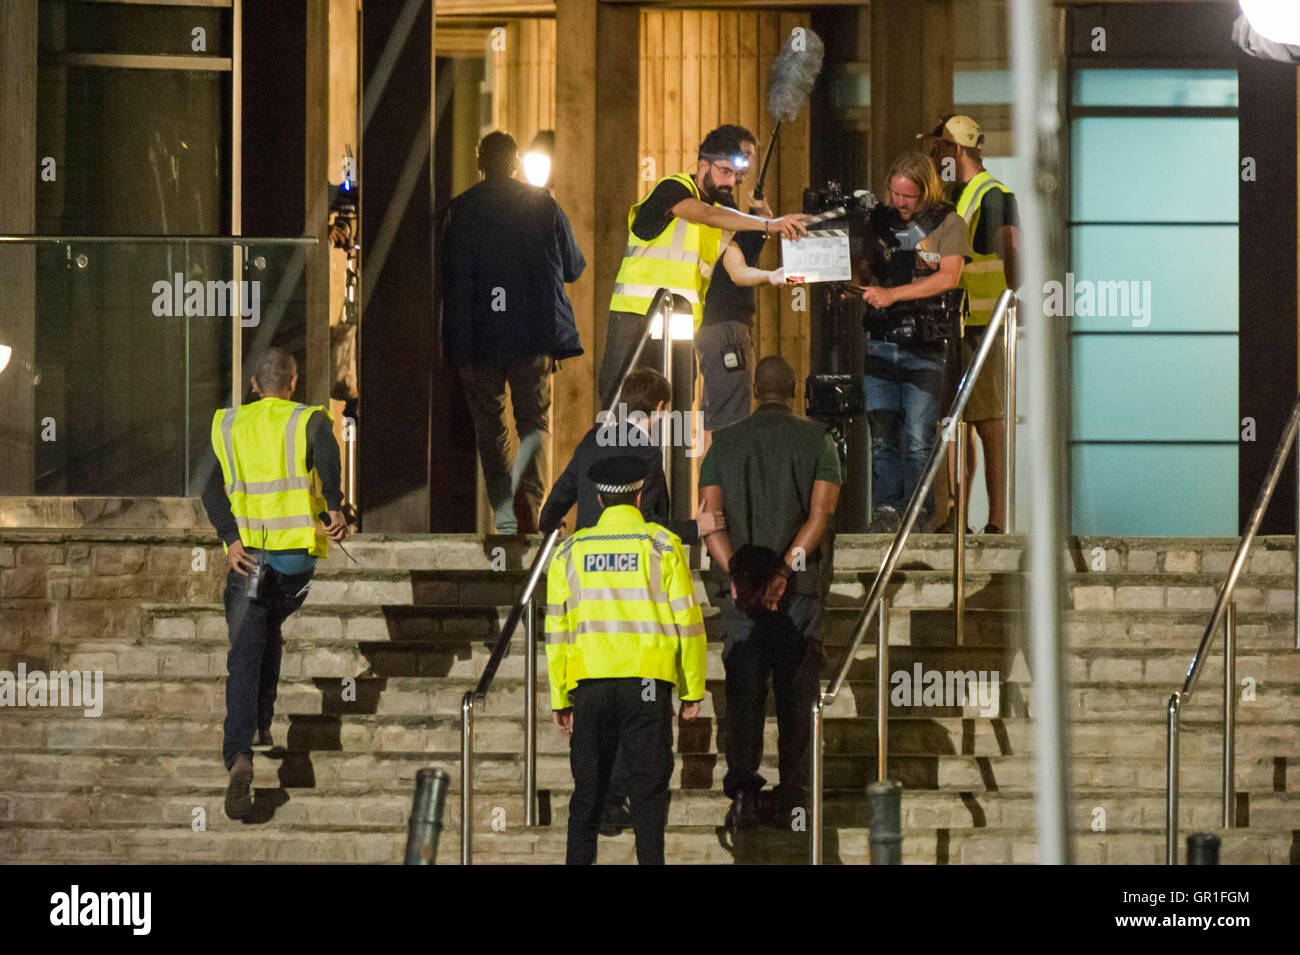 West Bay, Dorset, UK - 6th September 2016 - David Tennant and Sir Lenny Henry filming arrest scene on the steps Stock Photo